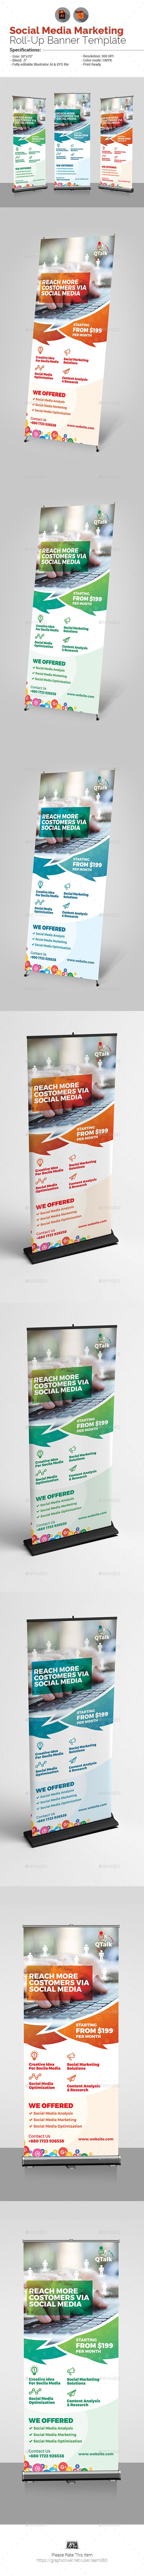 "Social Media Marketing Roll Up Banner by aam360 Similar Templates:INFORMATIONS FOR THIS ROLL-UP BANNER TEMPLATE:FEATURES:Size: 30""x70"" Bleed: .5""Three Color VariationsFully edita"